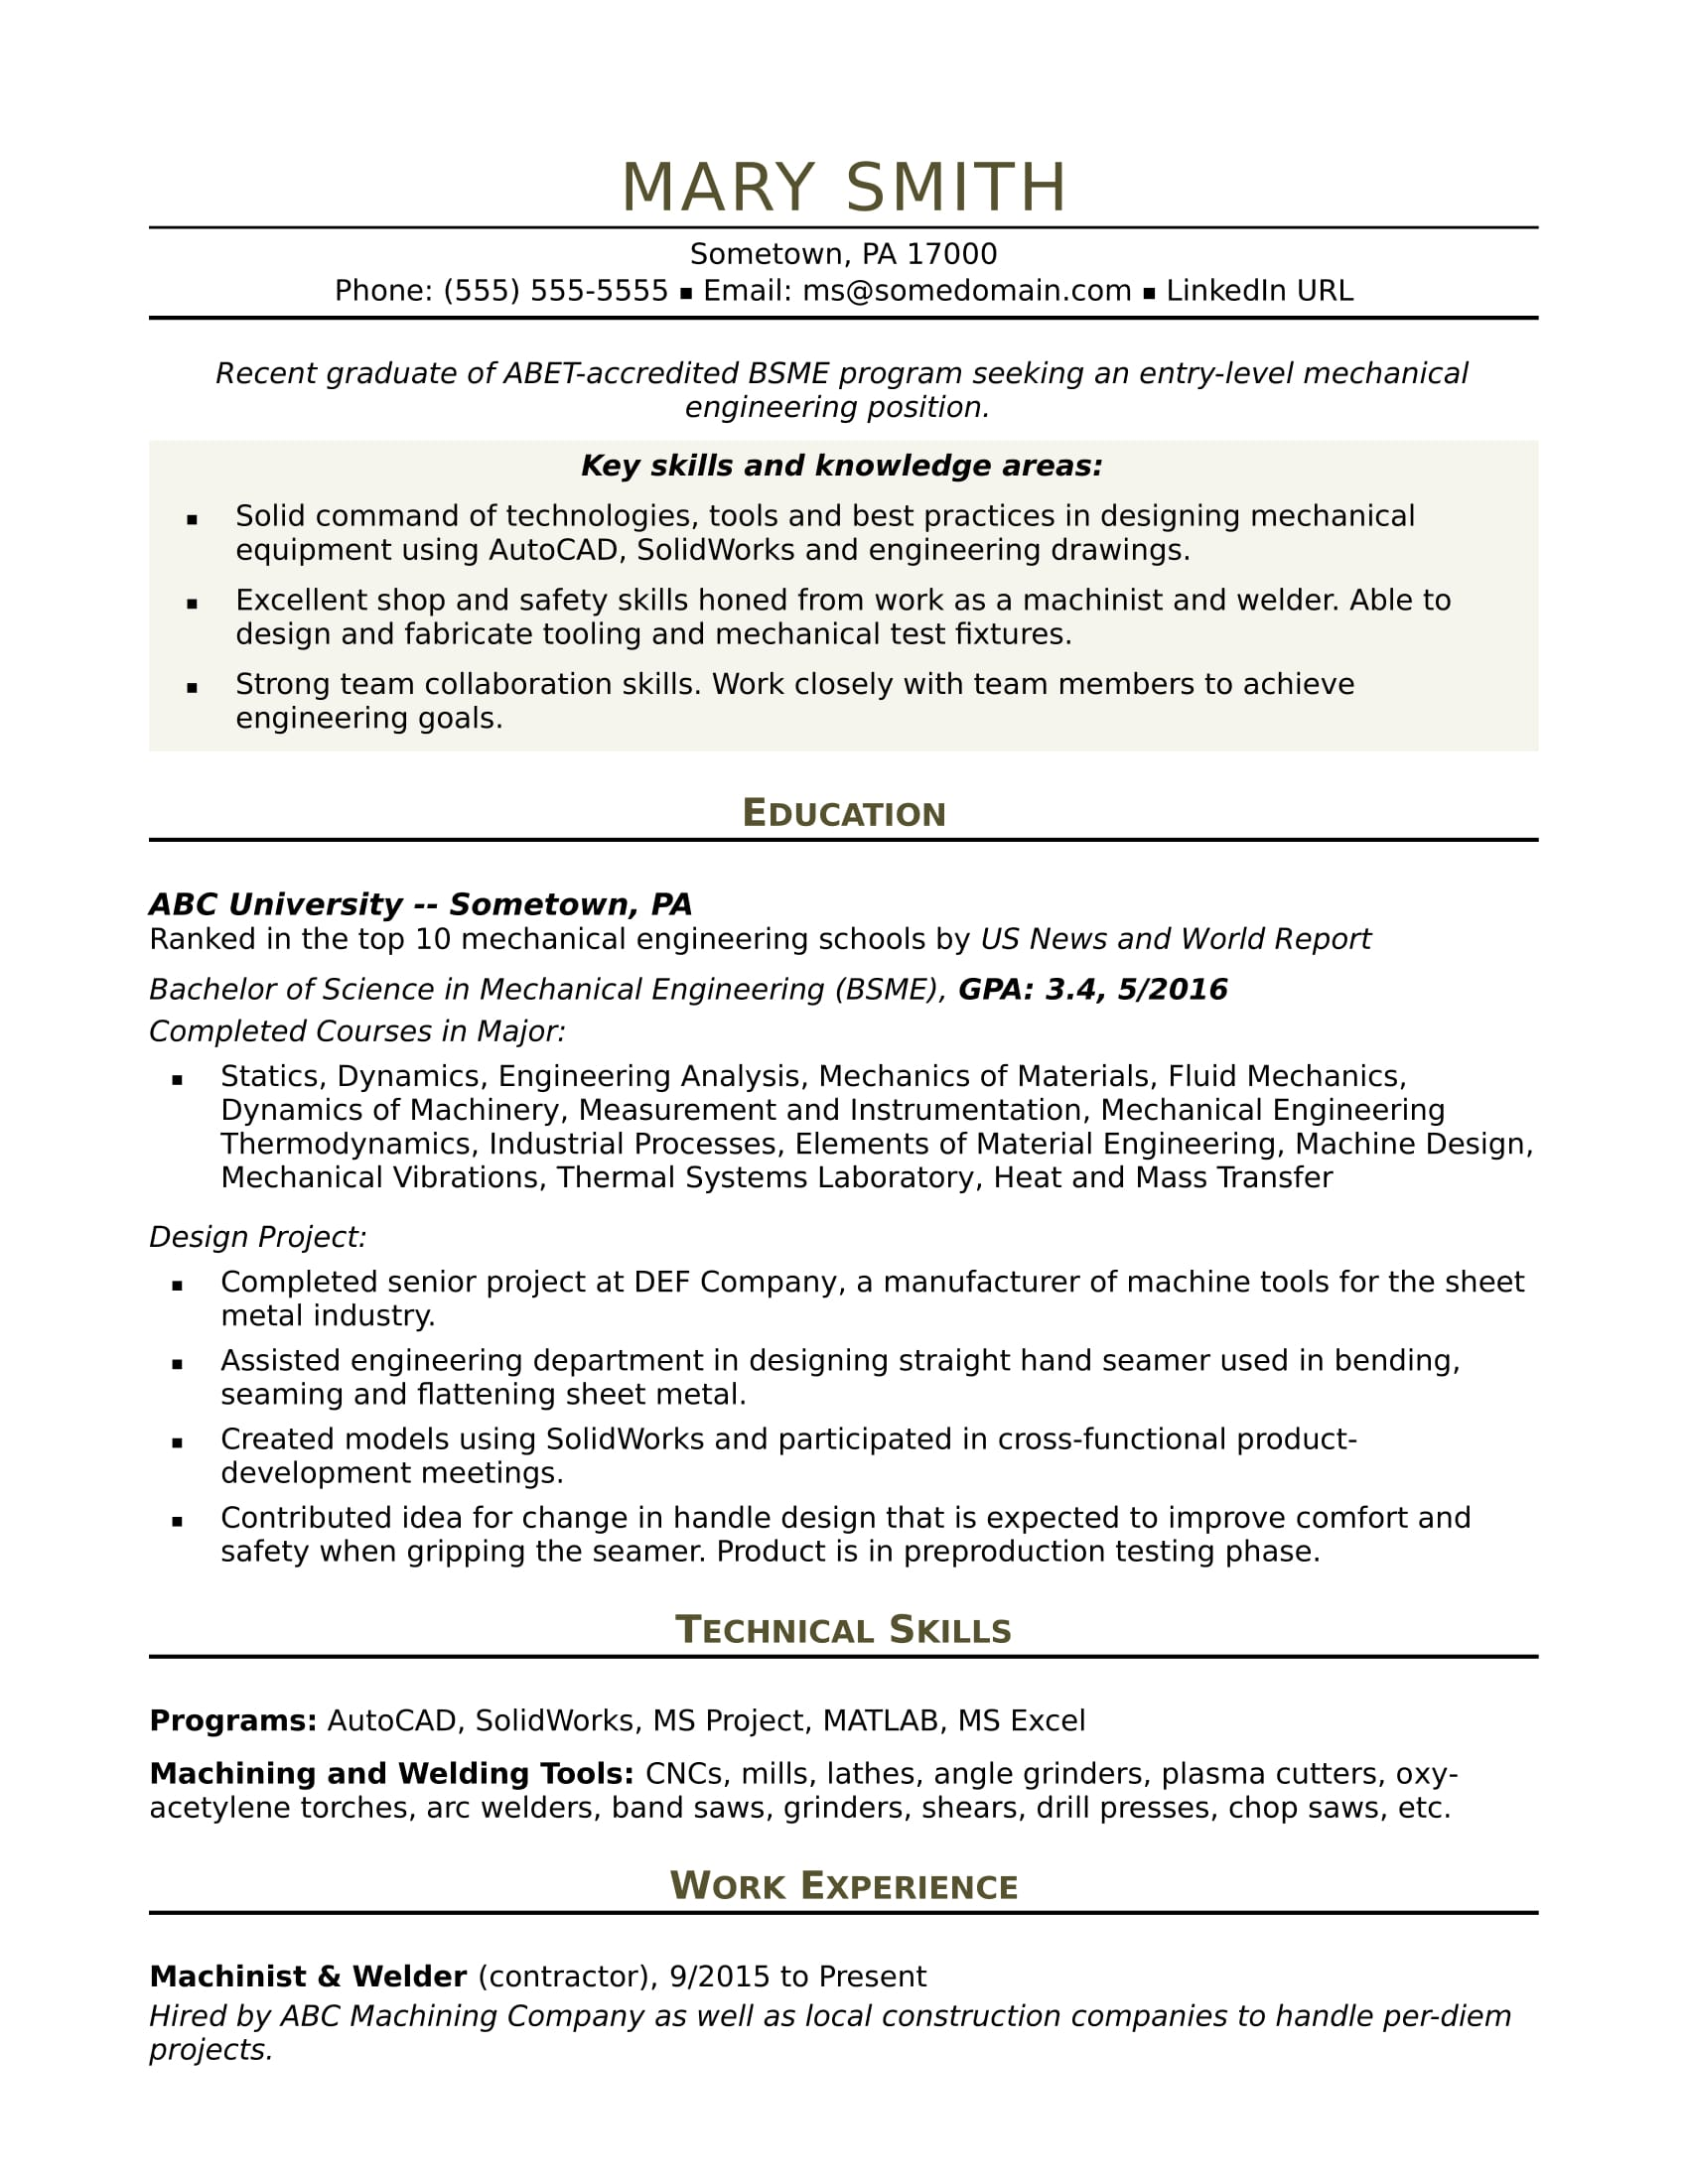 sample resume for an entry level mechanical engineer - Project Engineer Resume Template